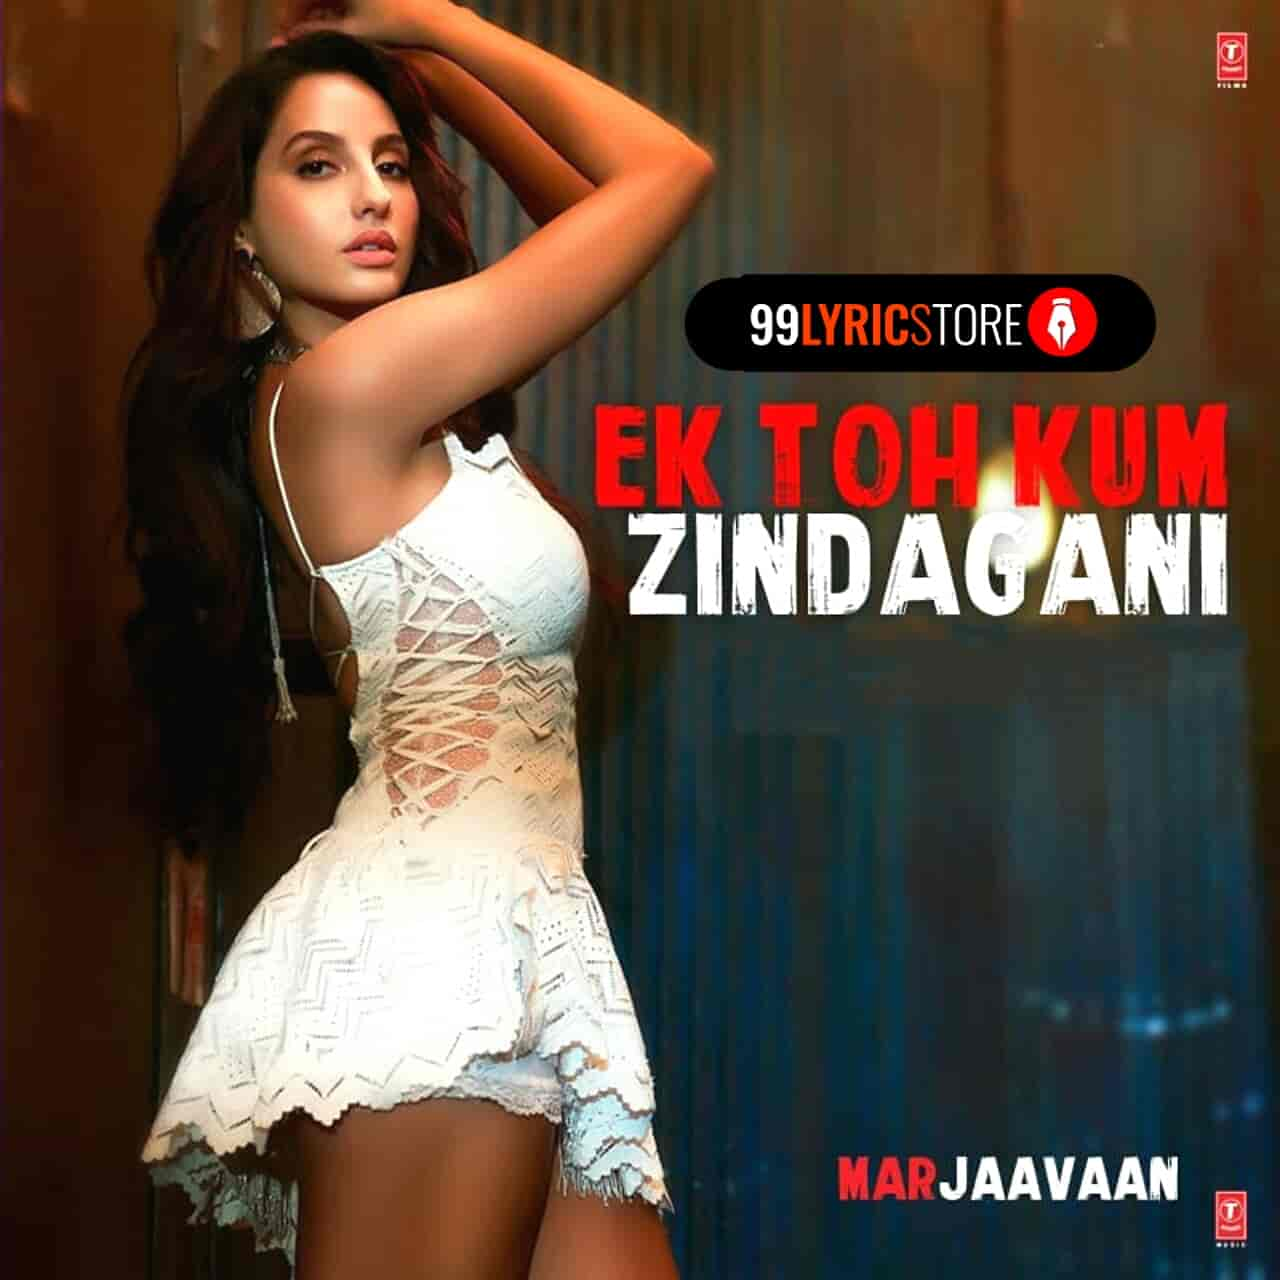 Ek Toh Kum Zindagani Song Images